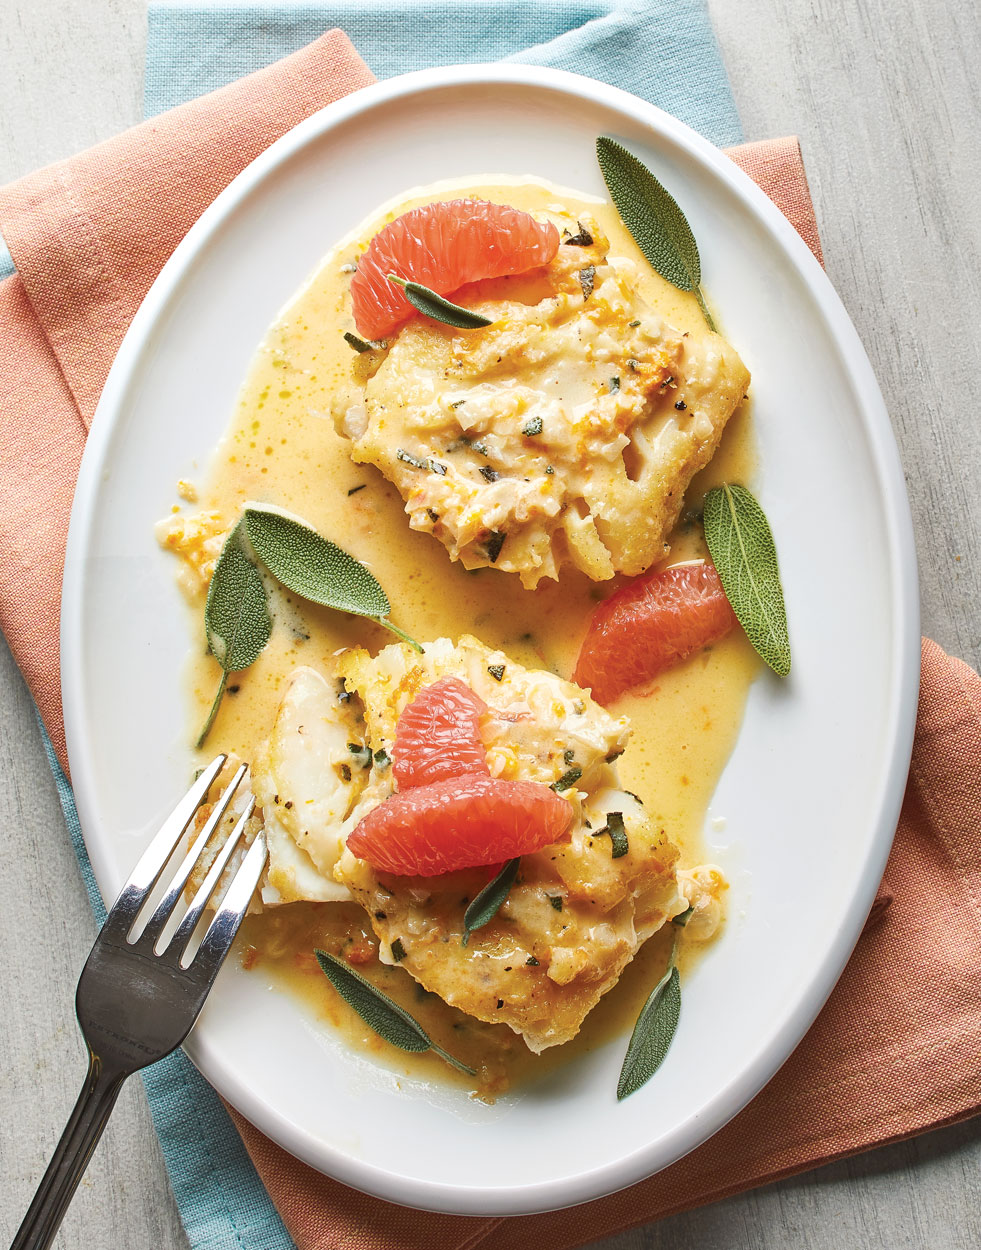 Sautéed Cod with grapefruit-sage sauce